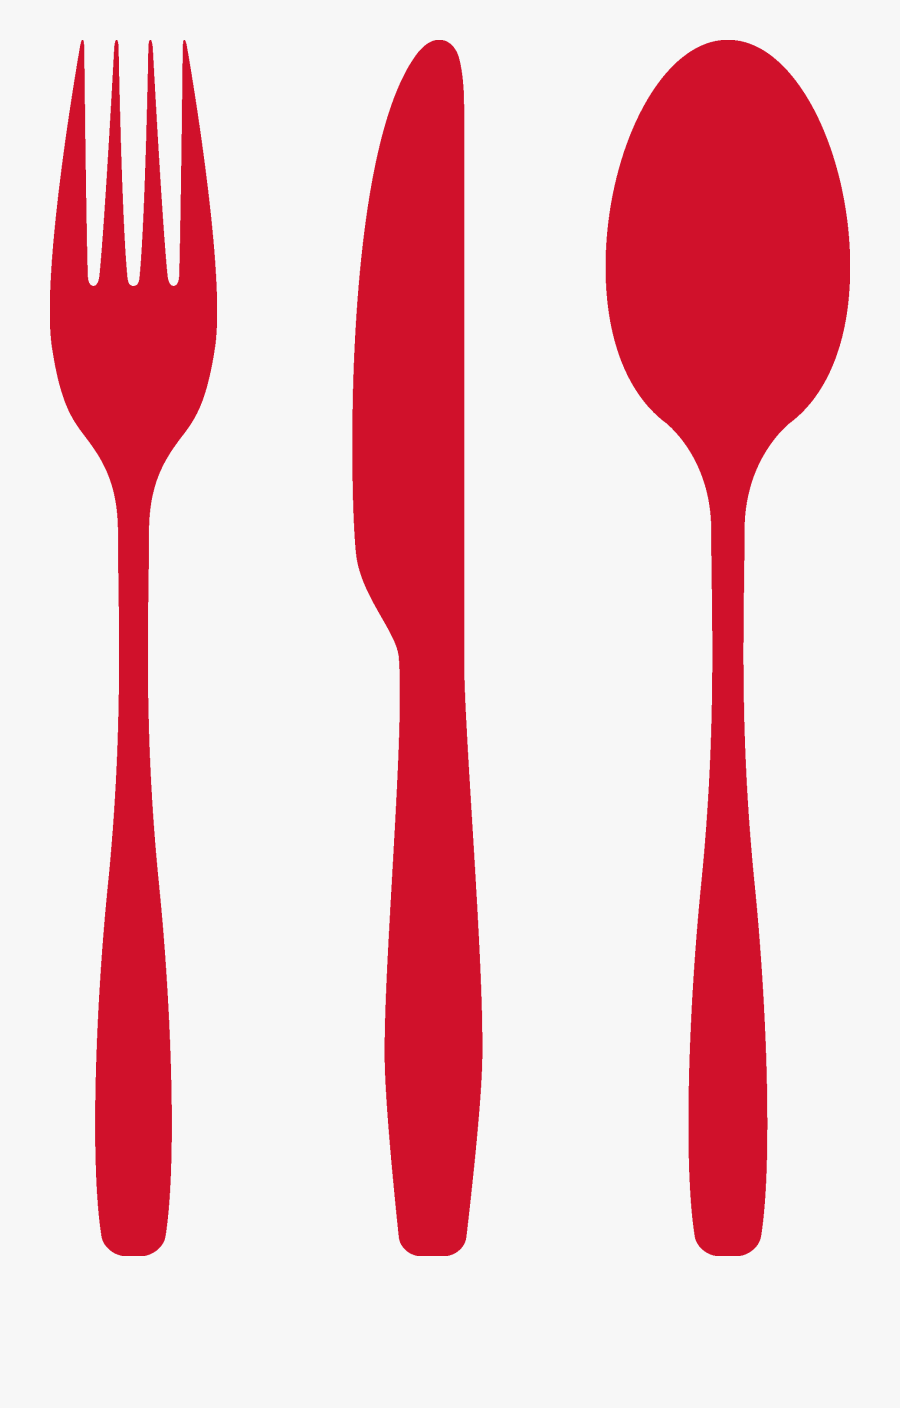 Food Beverage Service Insurance - Red Spoon And Fork Png, Transparent Clipart